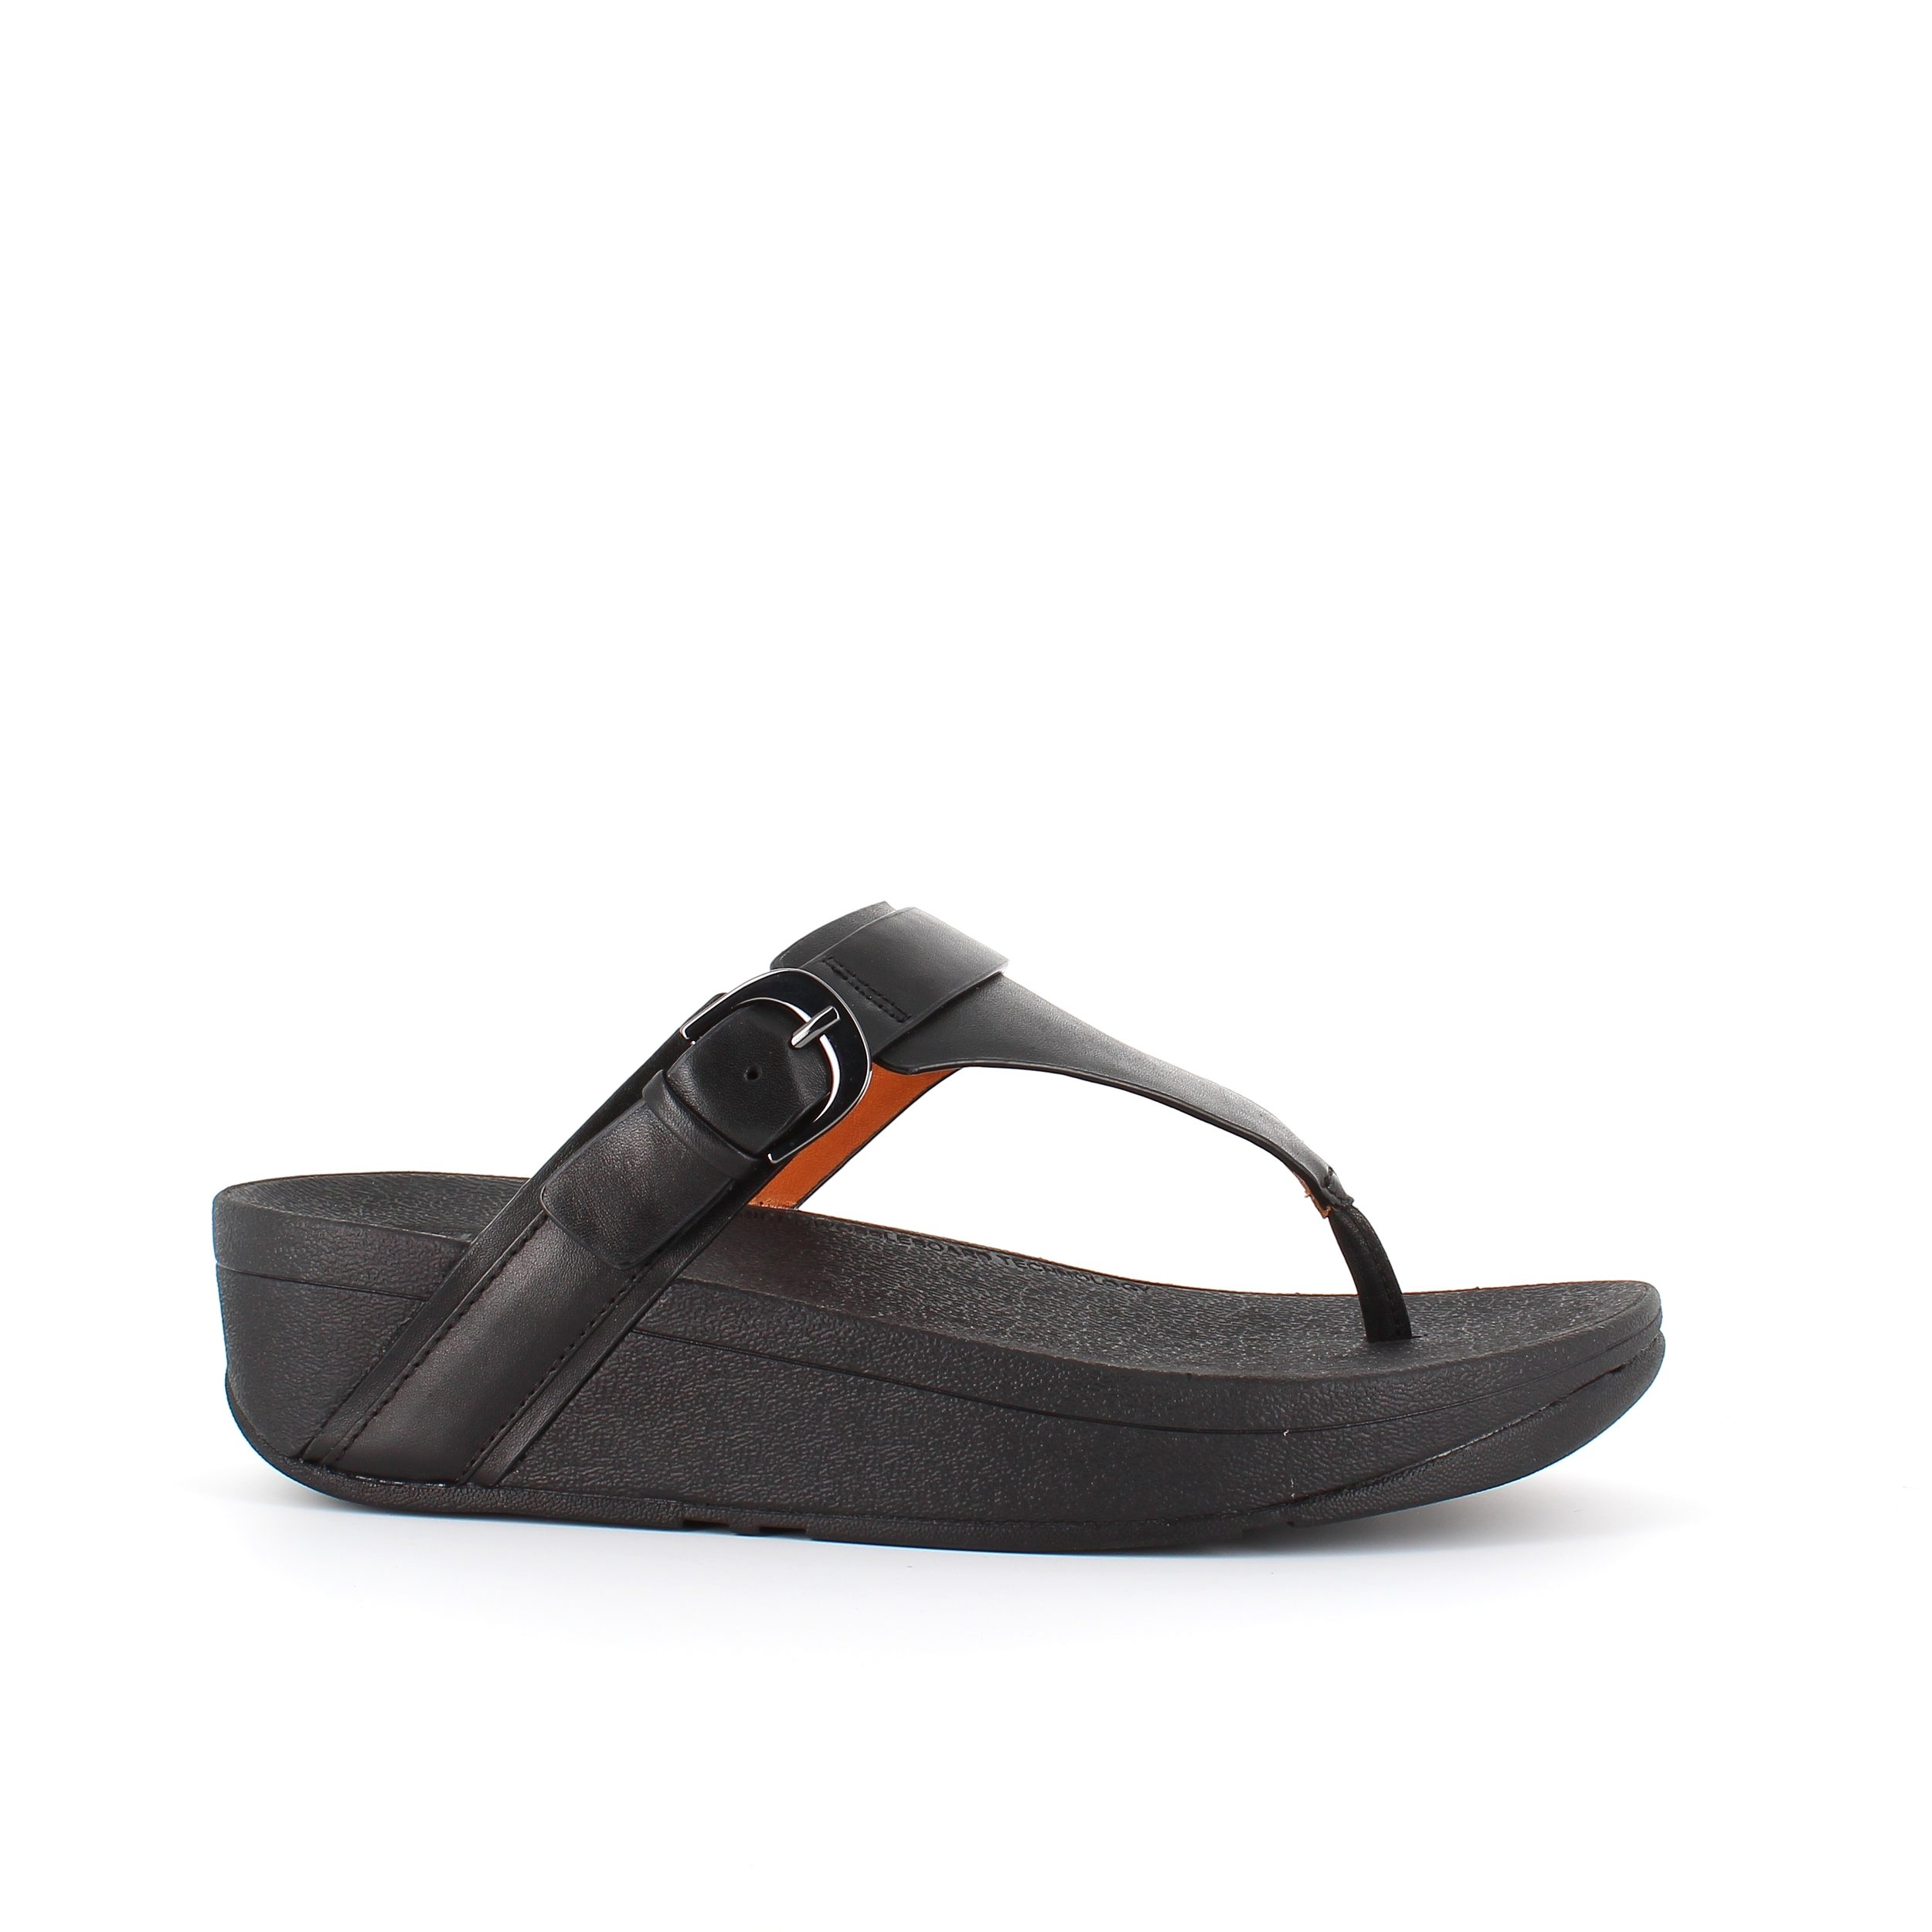 Image of   Edit fitflop sandal i læder - 39